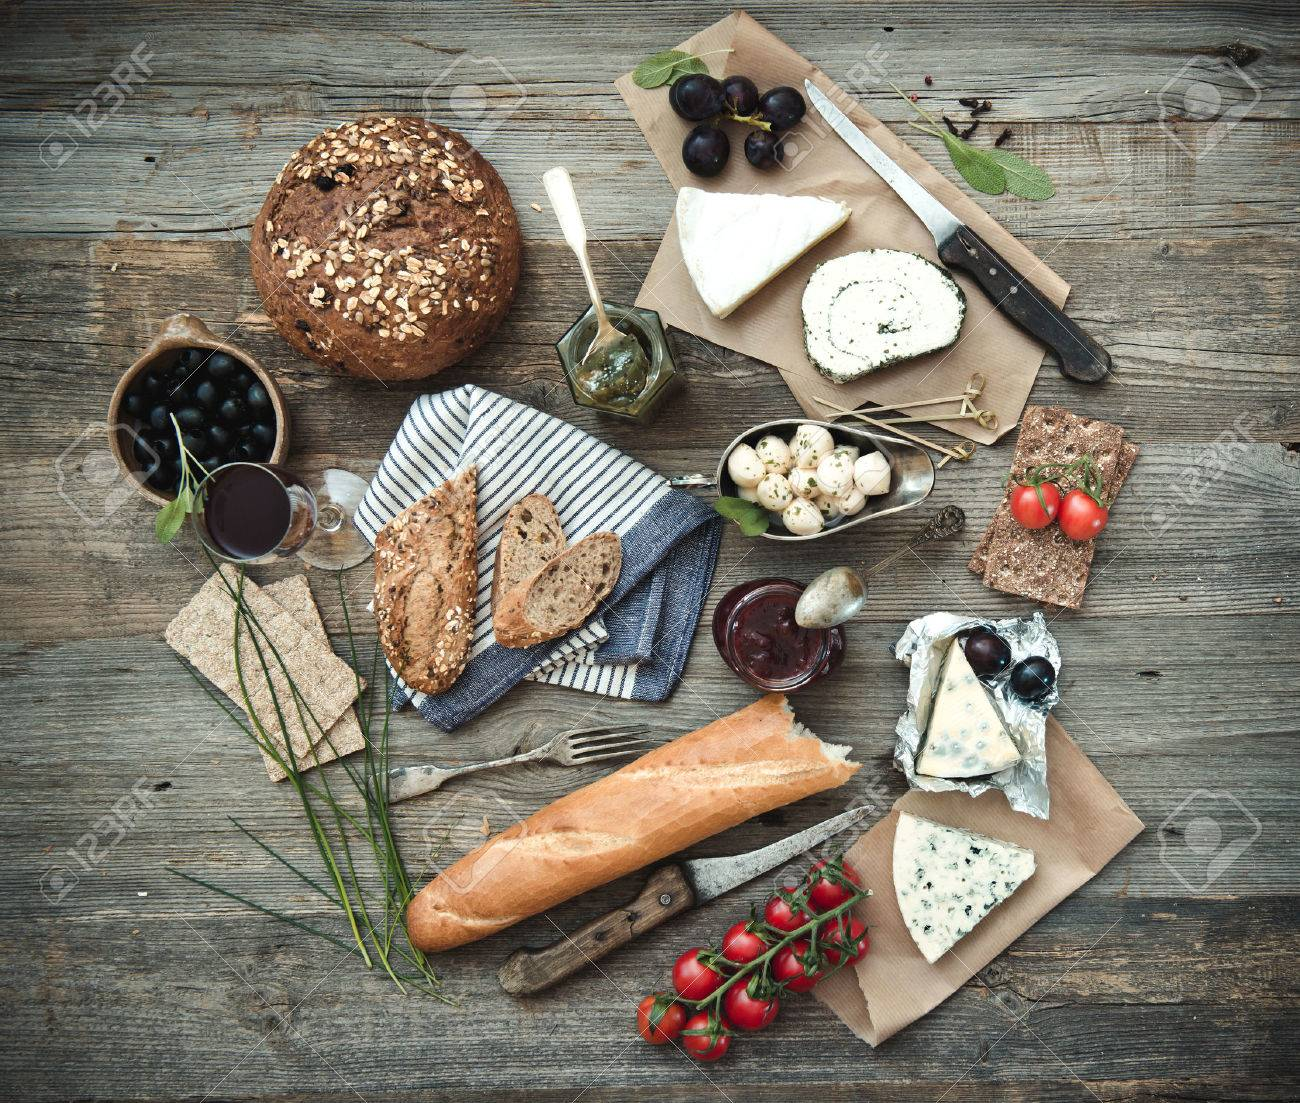 French food on a wooden background. Different types of cheese, wine and other ingredients on a wooden table - 45900264